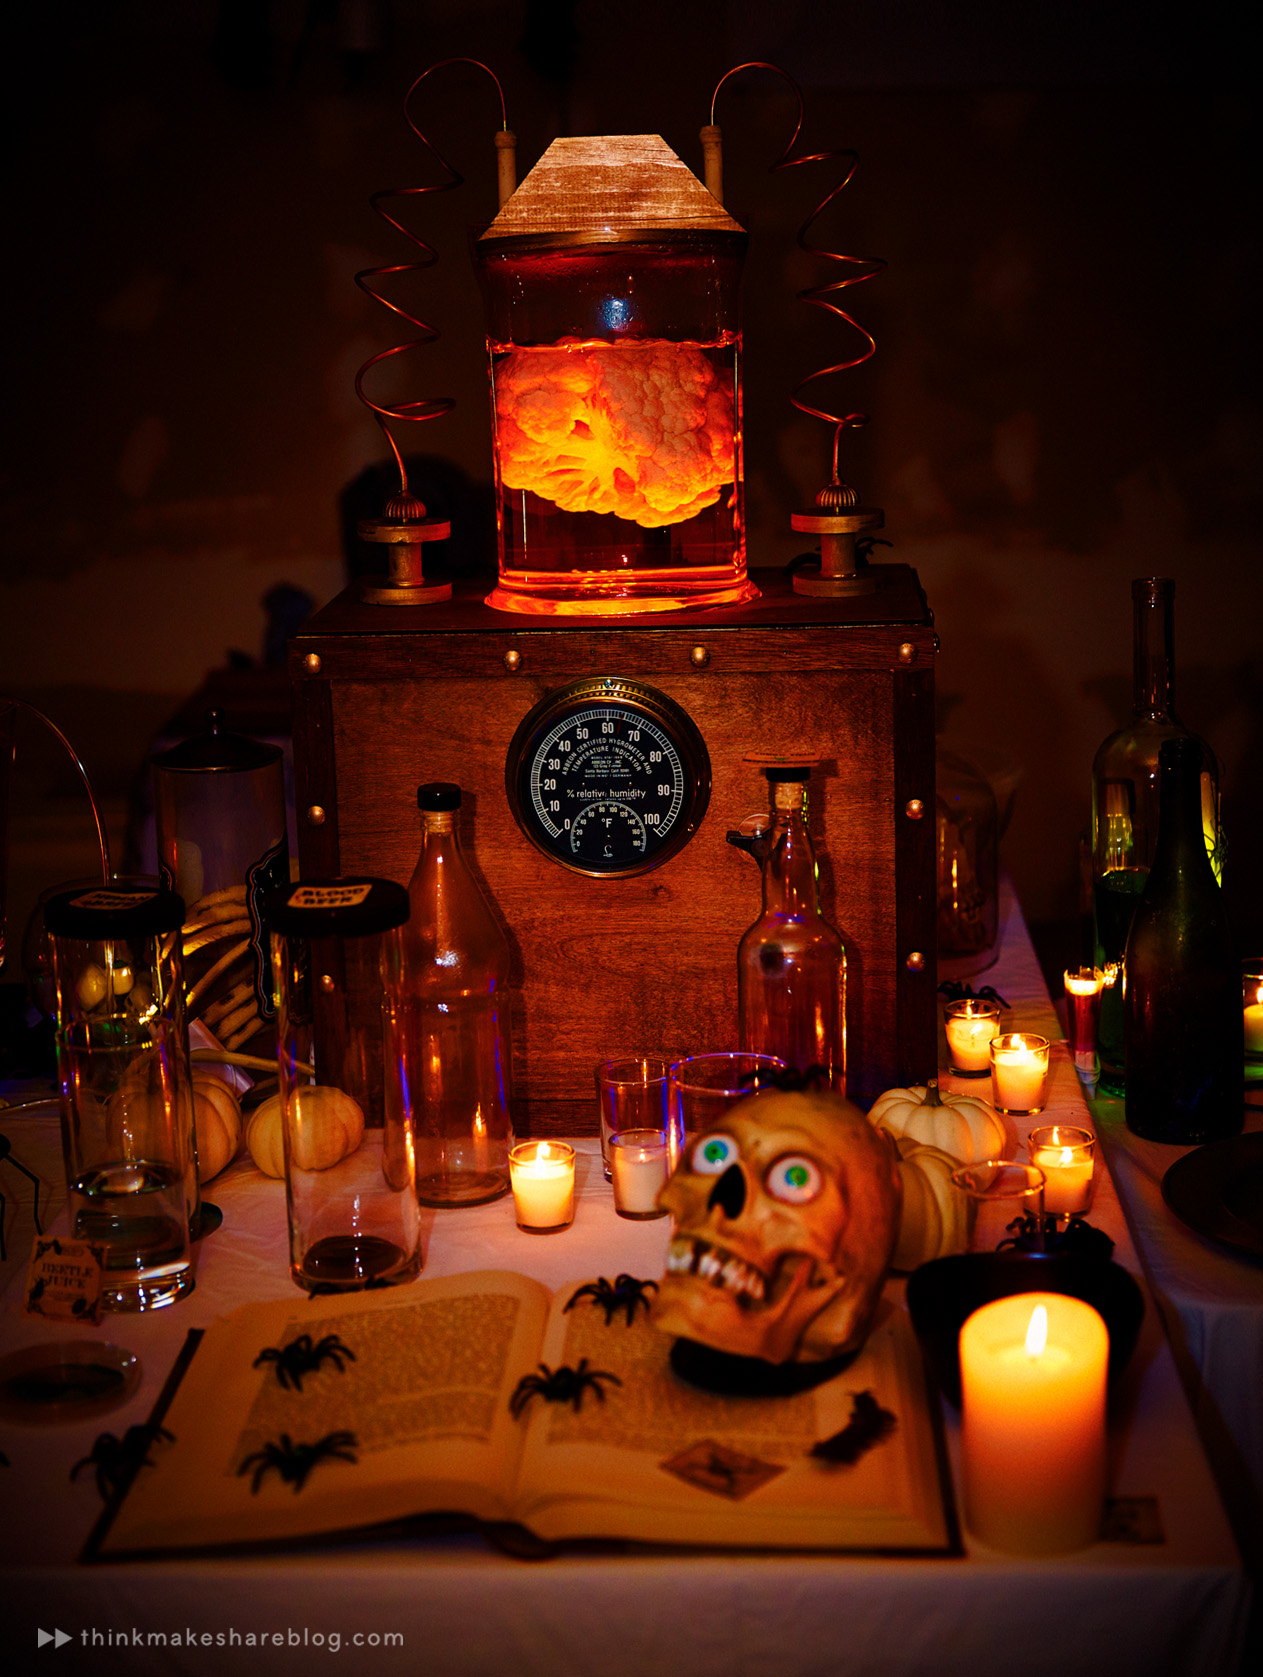 A Halloween party fit for a mad scientist - Think.Make.Share.